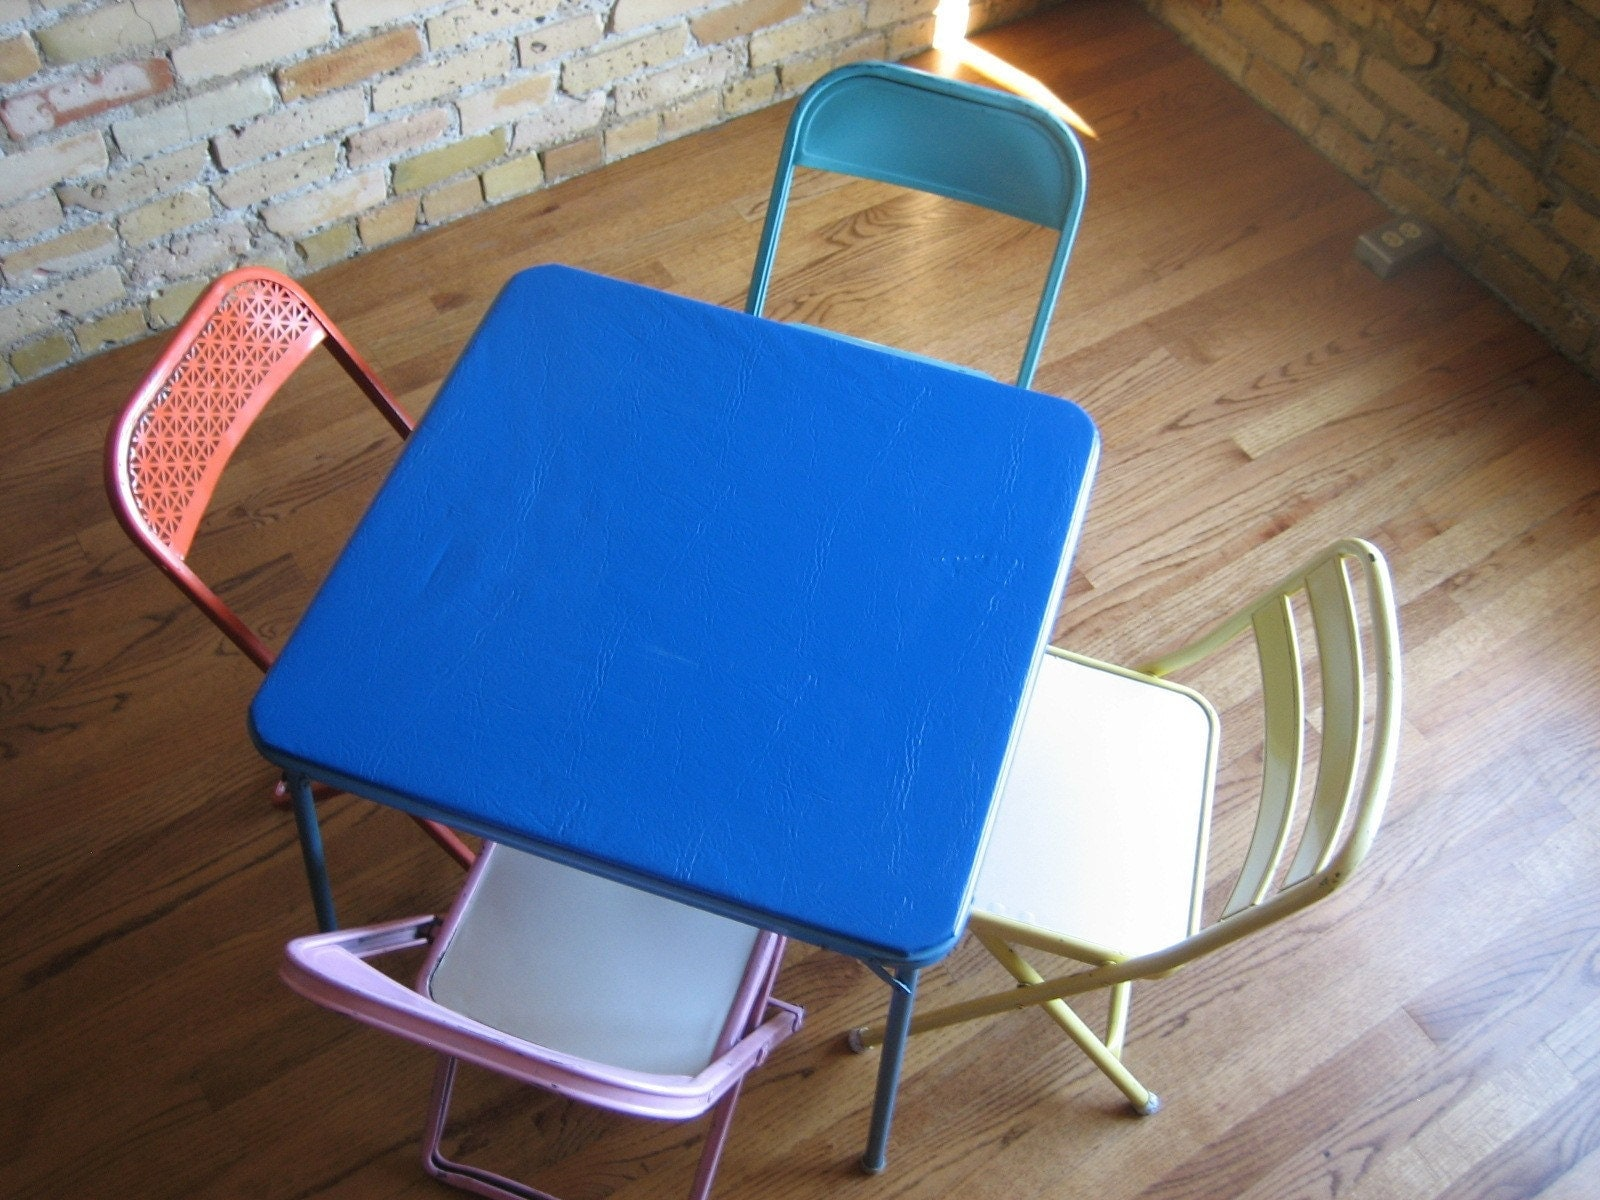 Childs Metal Card Table and Folding Chairs by